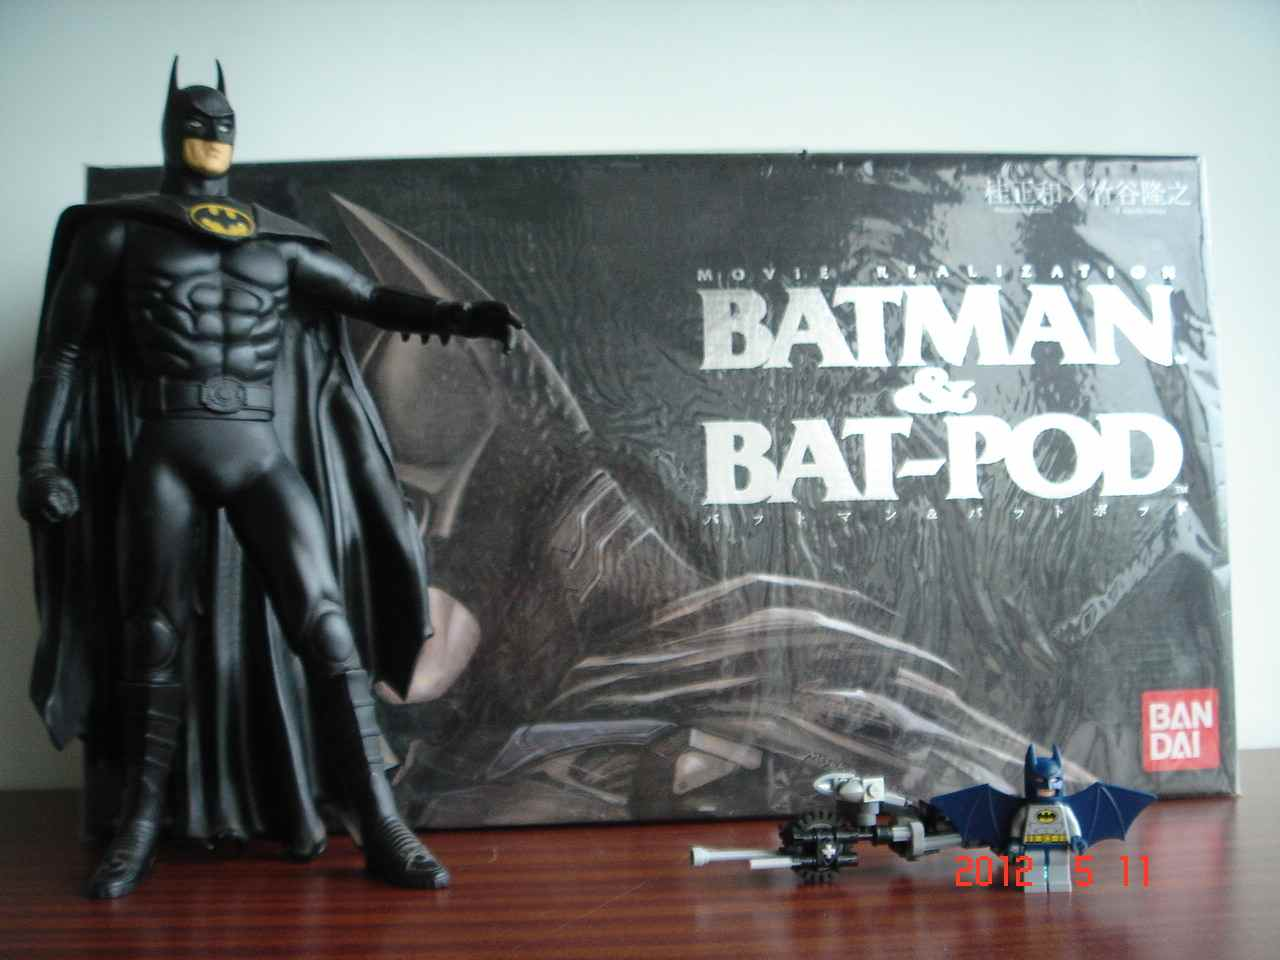 lego_batman_ucc-office_051101.jpg